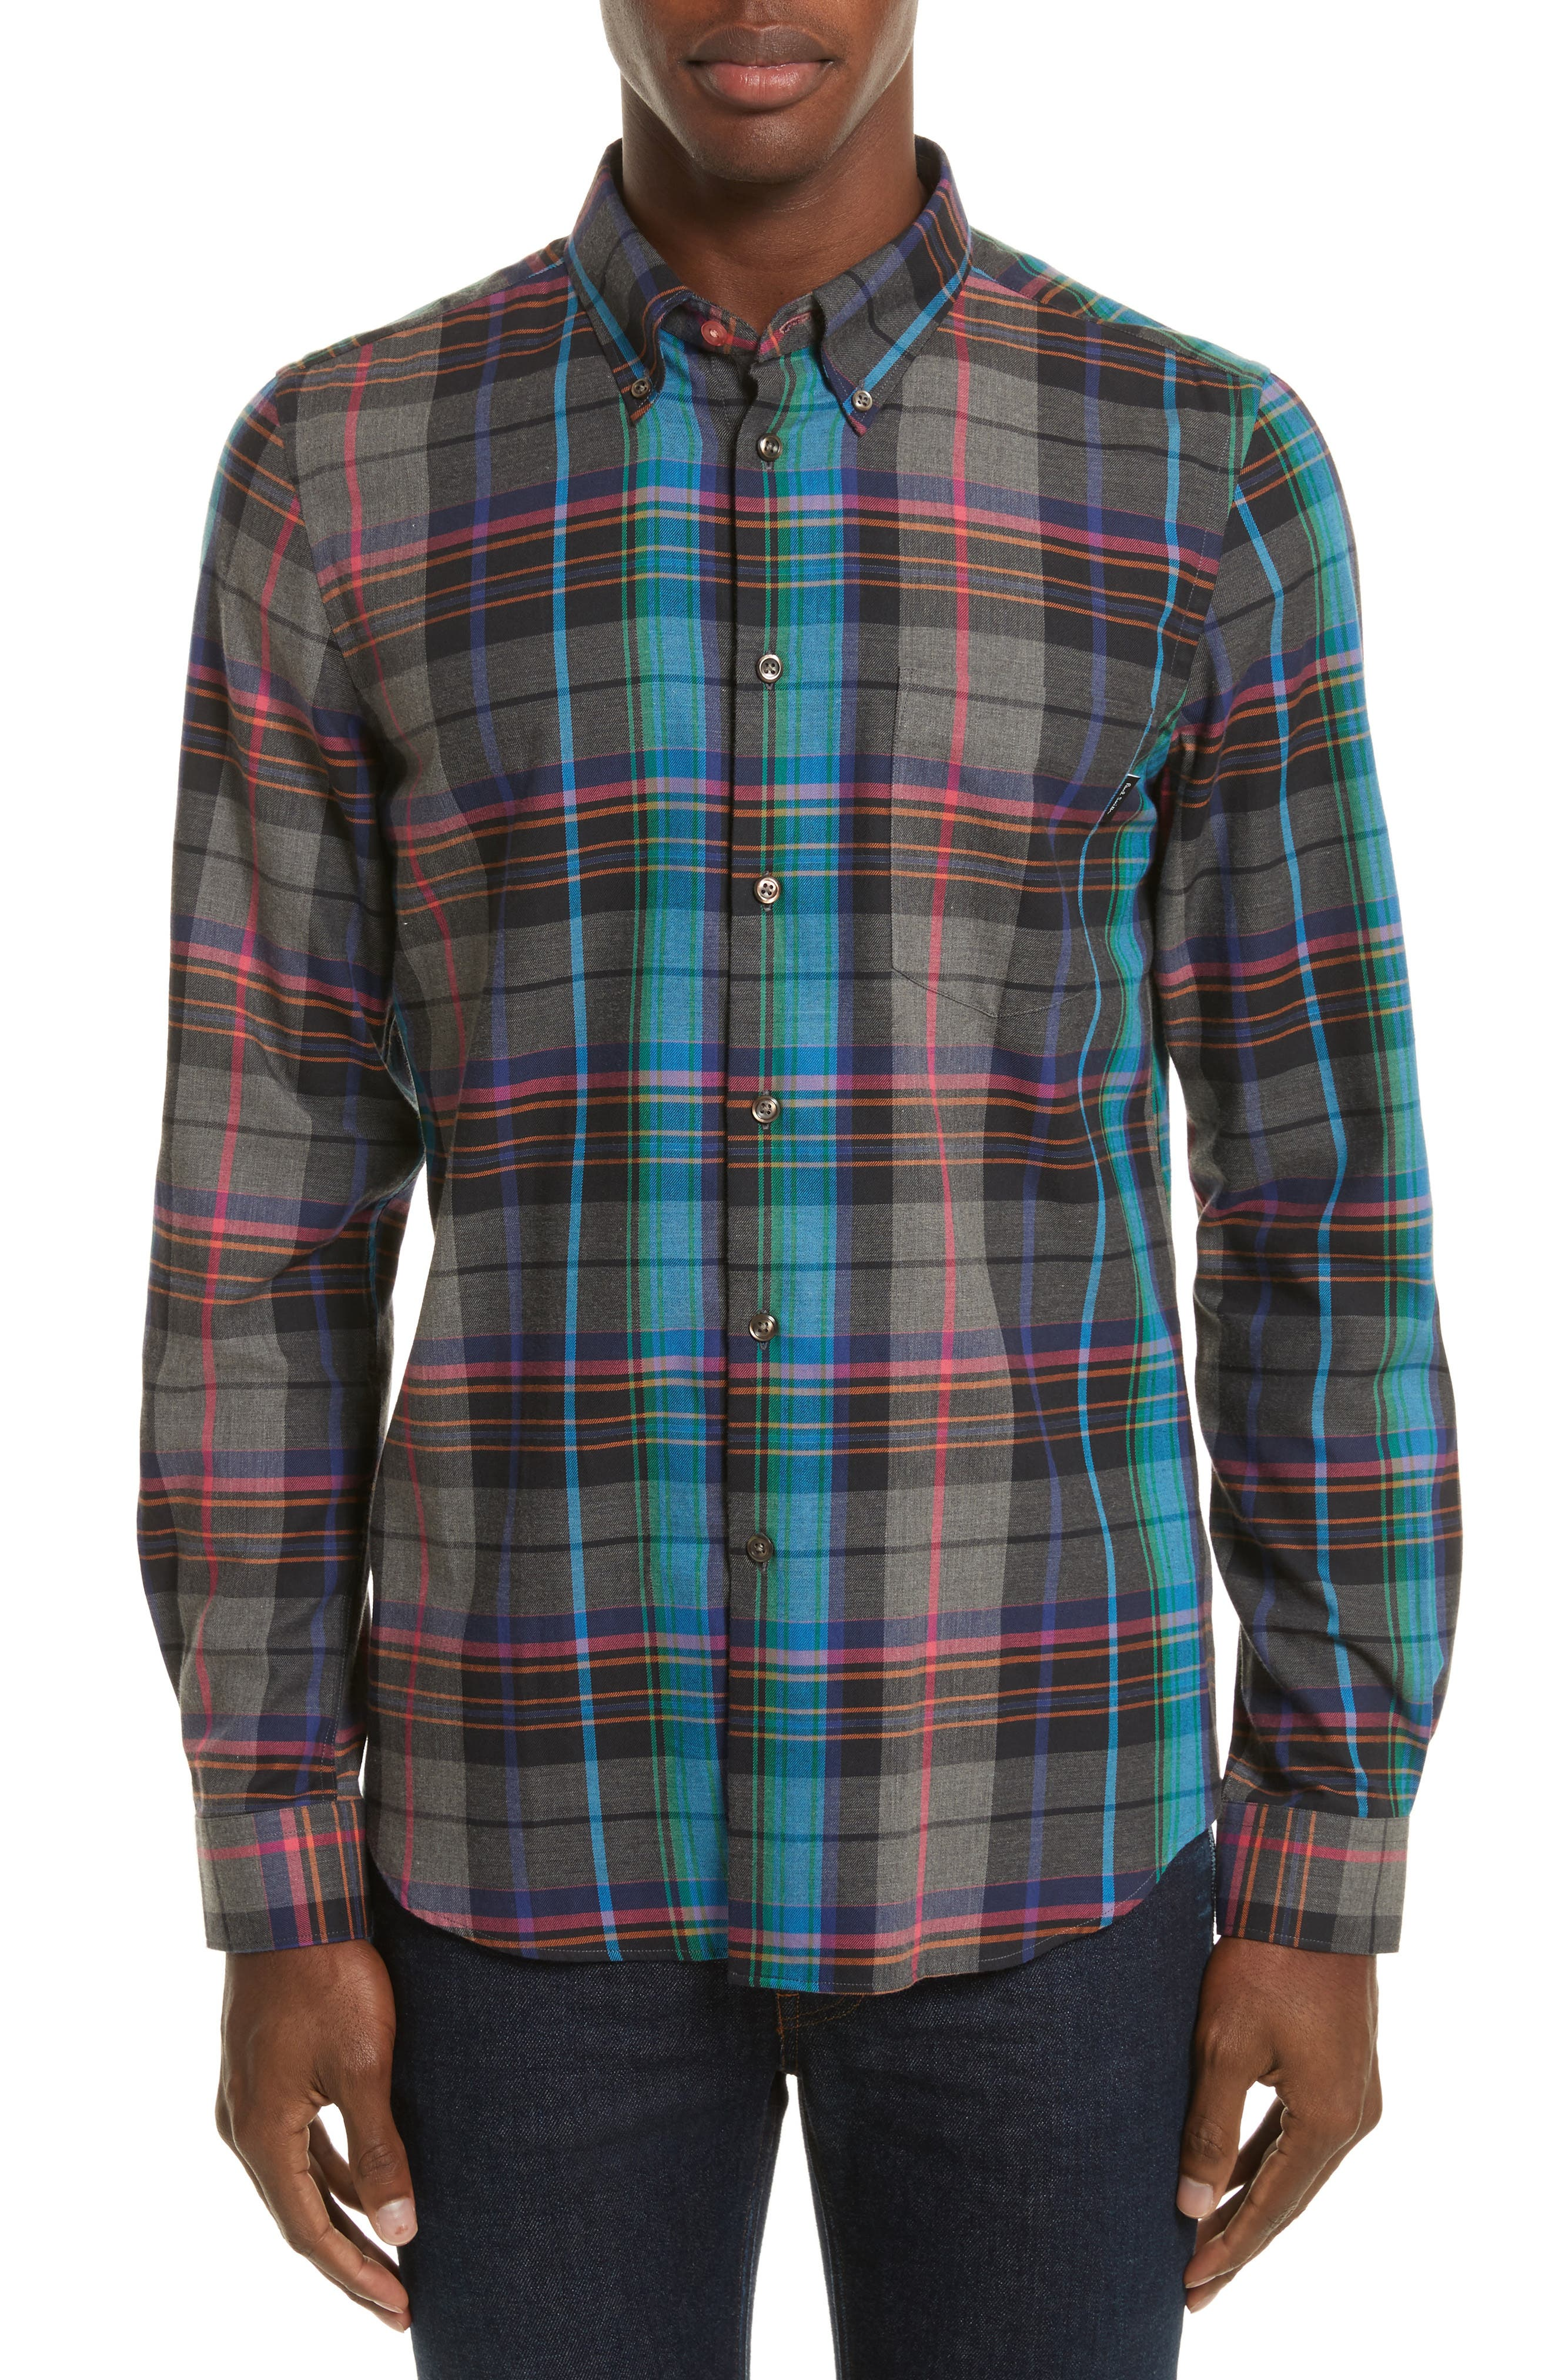 Alternate Image 1 Selected - PS Paul Smith Plaid Woven Shirt